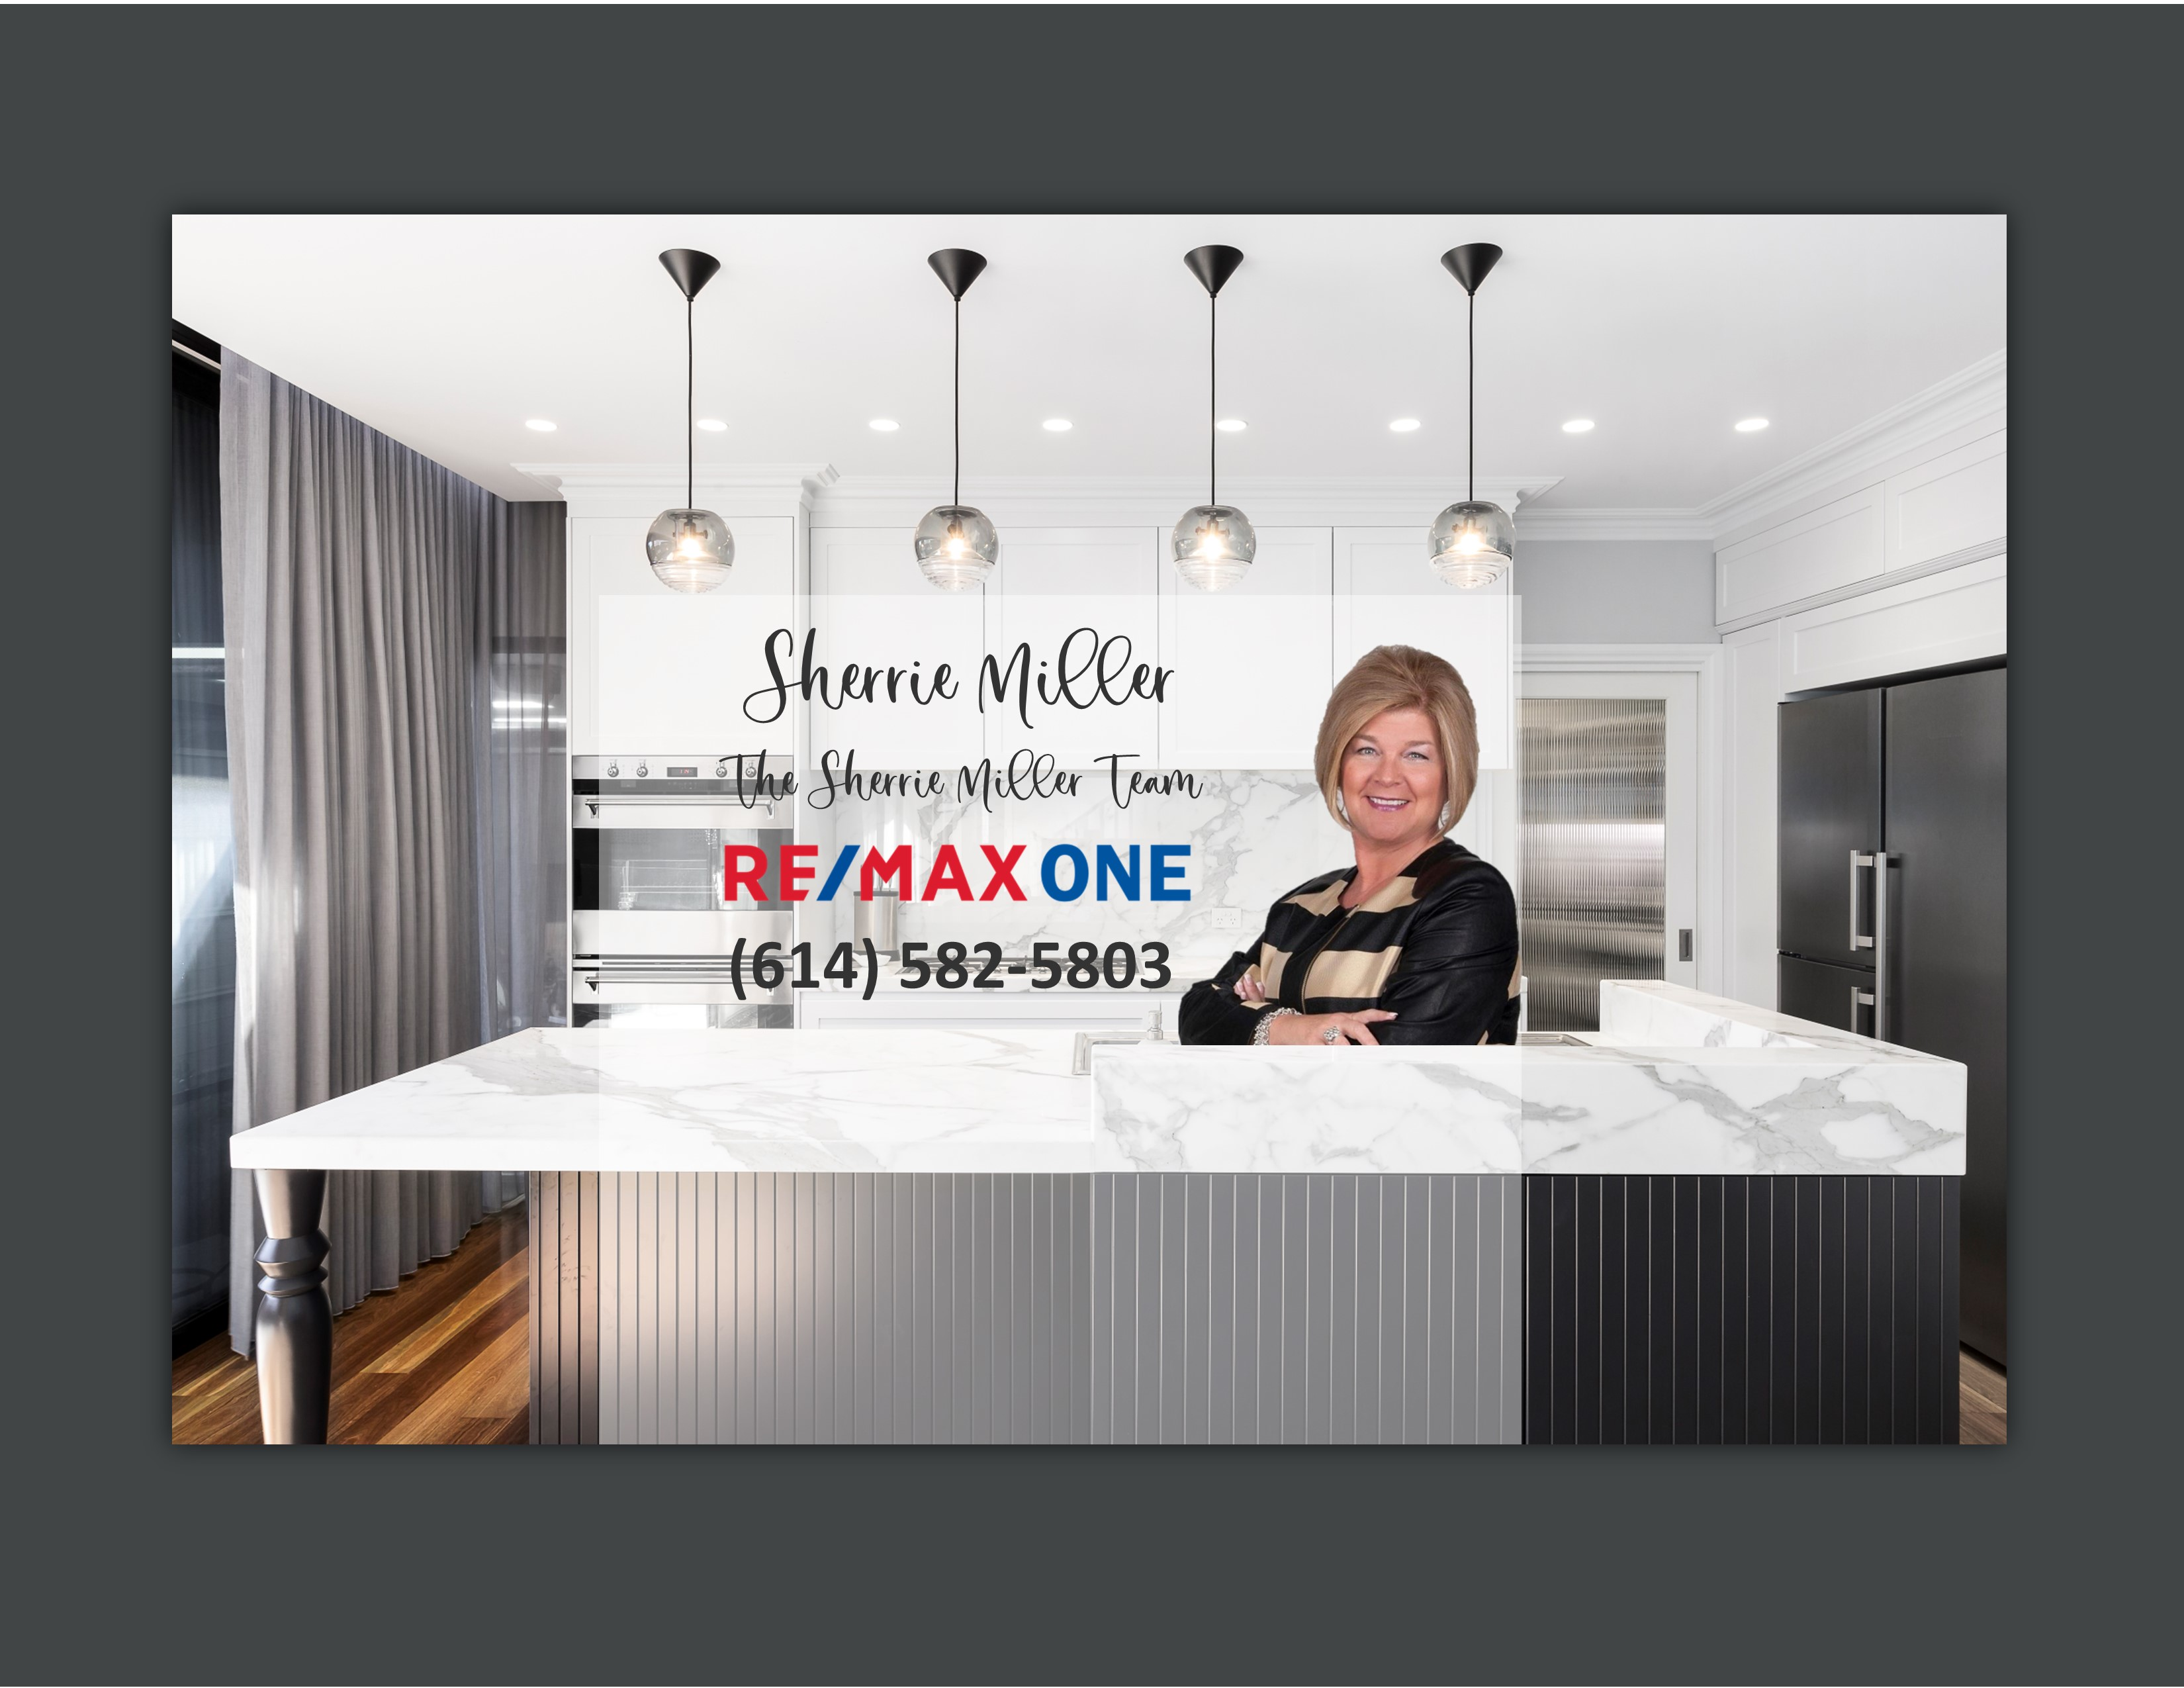 Sherrie Miller REMAX Web Site Cover